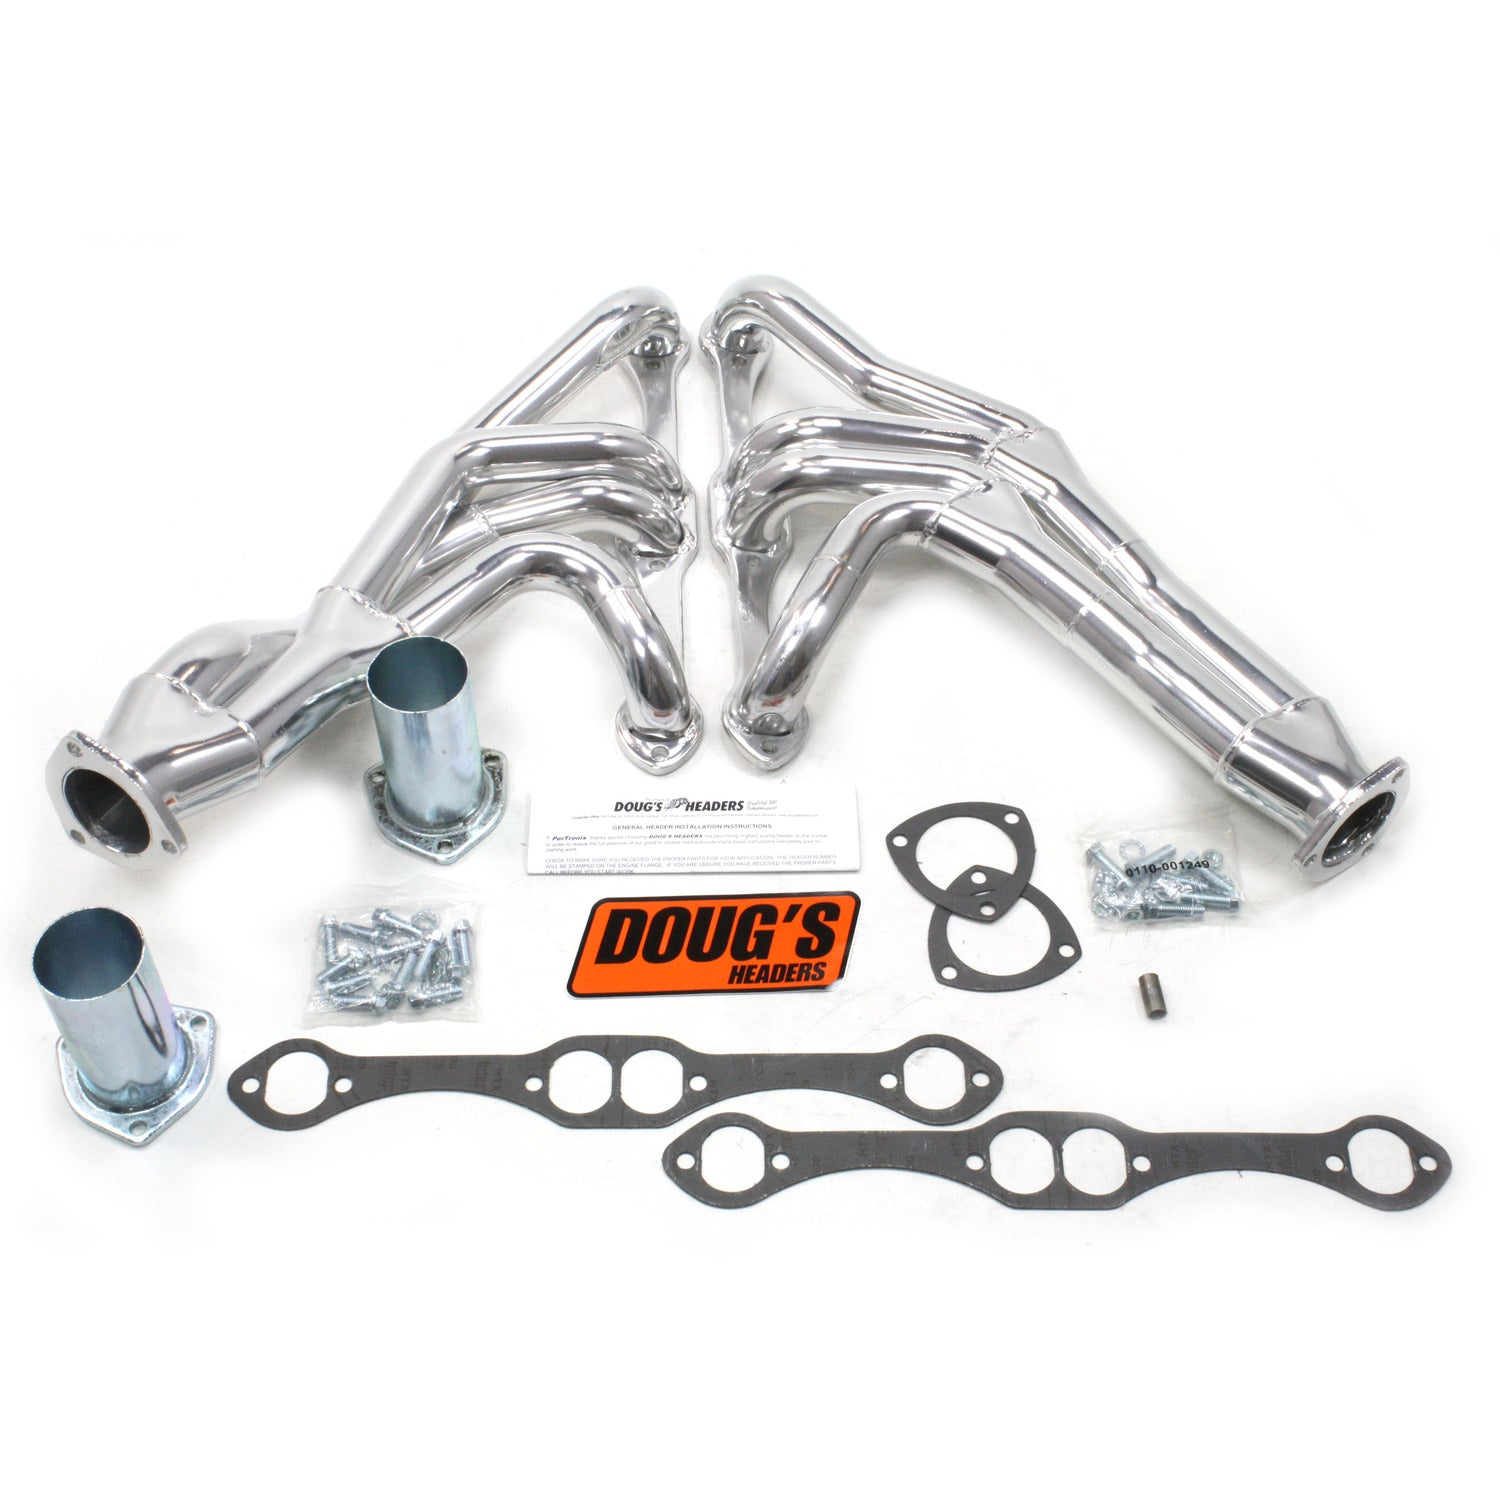 "Doug's Headers D357Y 1 5/8"" Tri-Y Header Chevrolet Passenger Car/Wagon Small Block Chevrolet 55-57 Metallic Ceramic Coating"